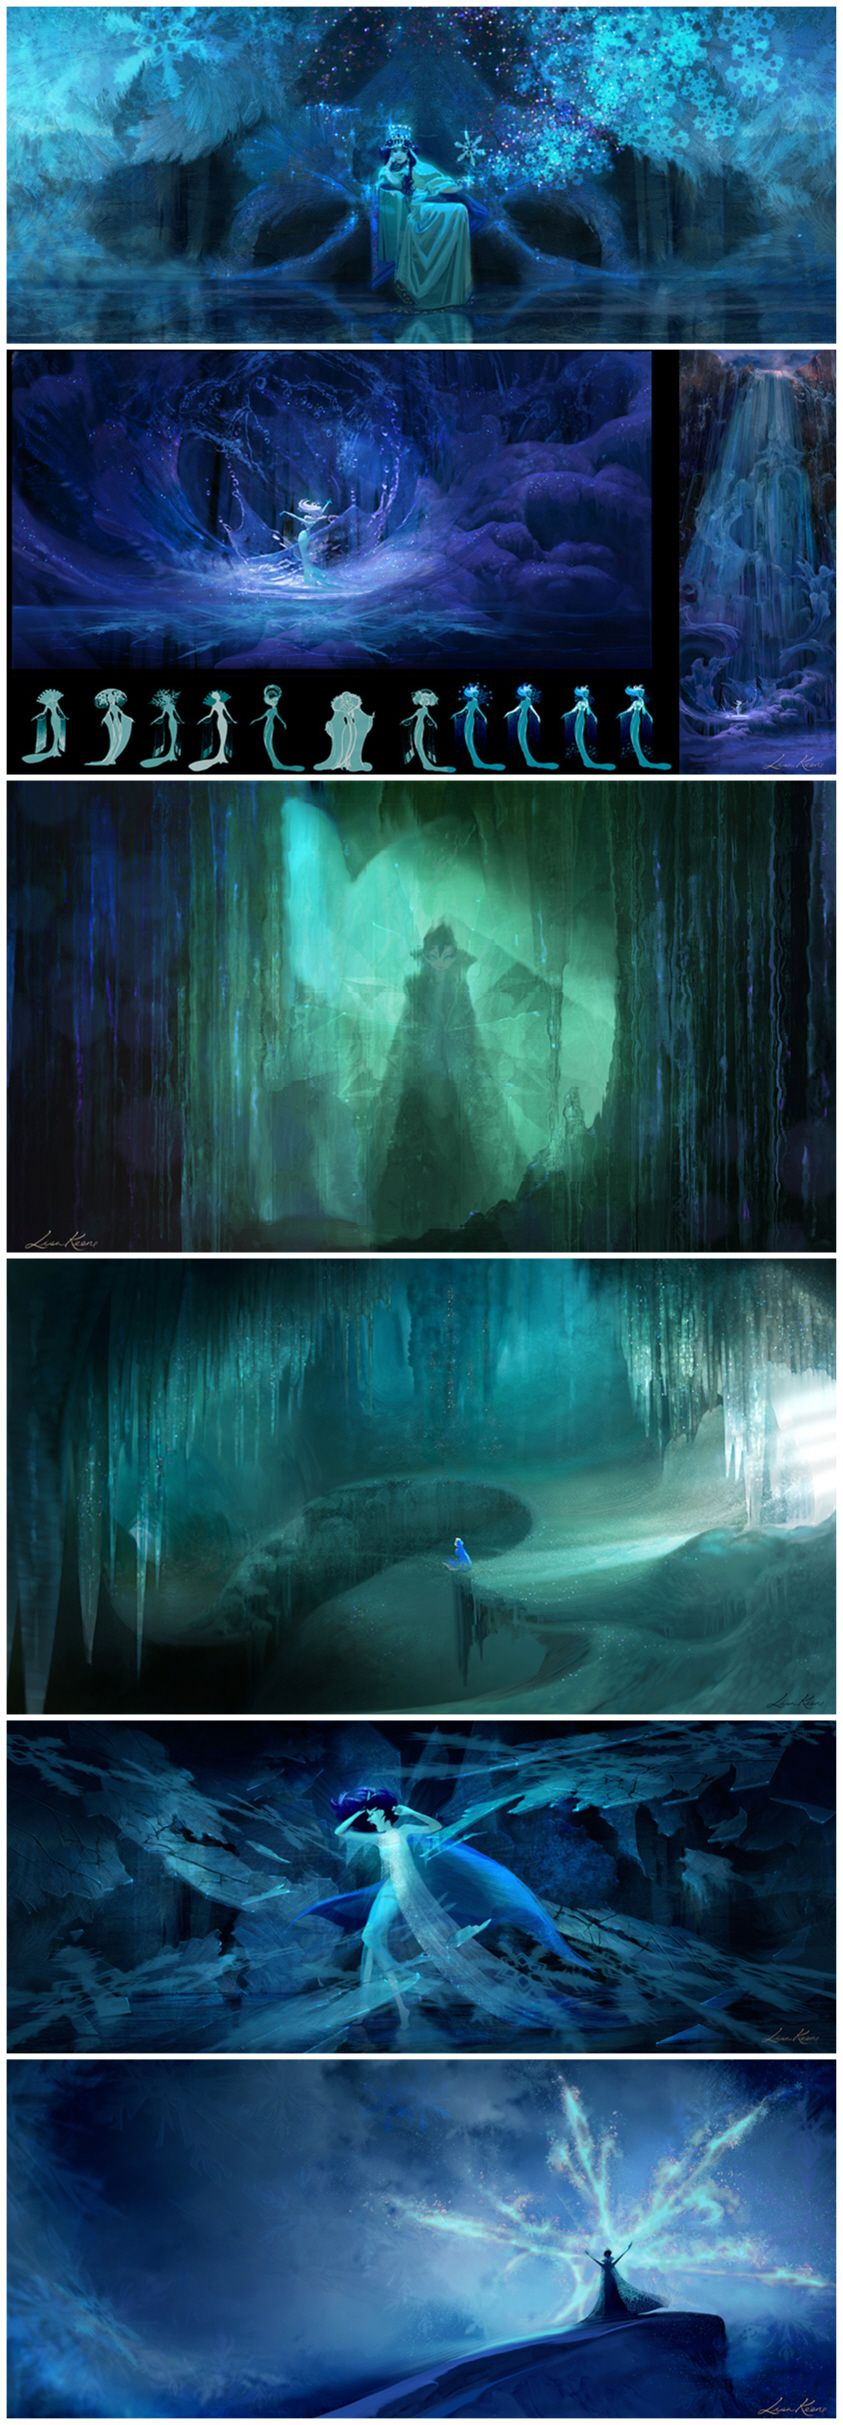 Frozen palace background  Frozen  Lisa Keene  Comics u Cartoons  Pinterest  Lisa